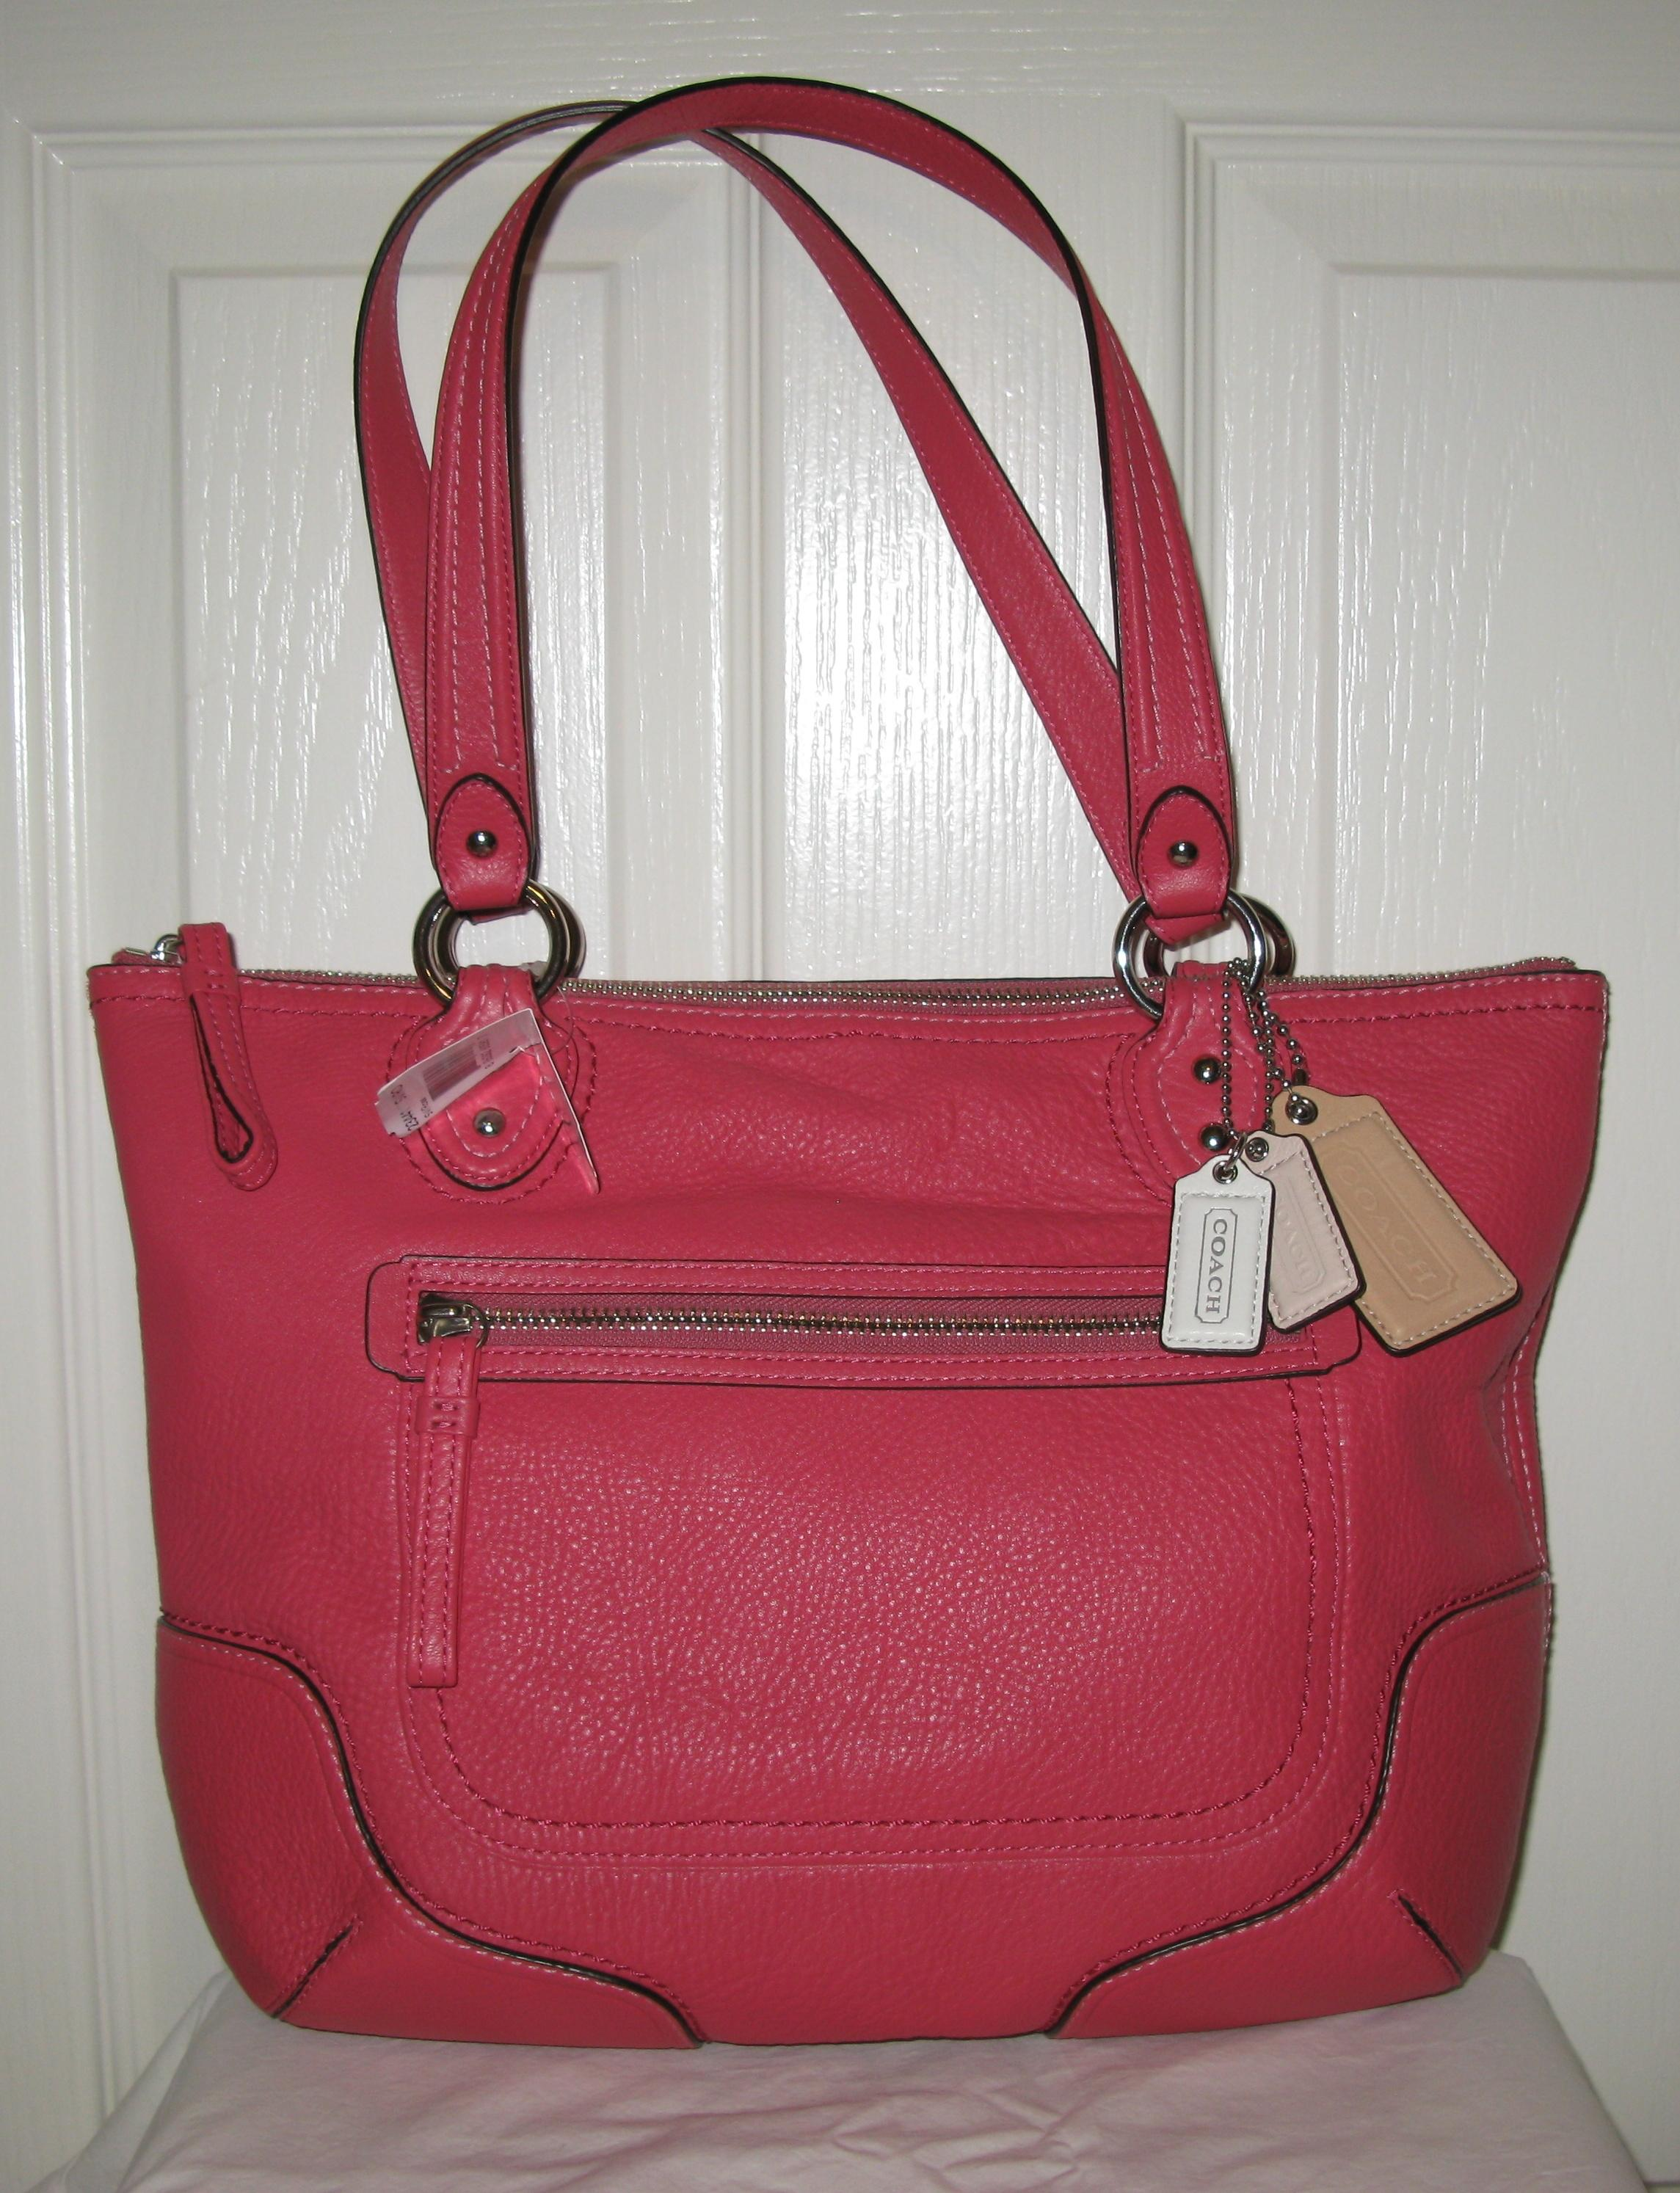 ... usa coach poppy small tote 23441 pink leather shoulder bag tradesy  f86b3 04740 159231c964739